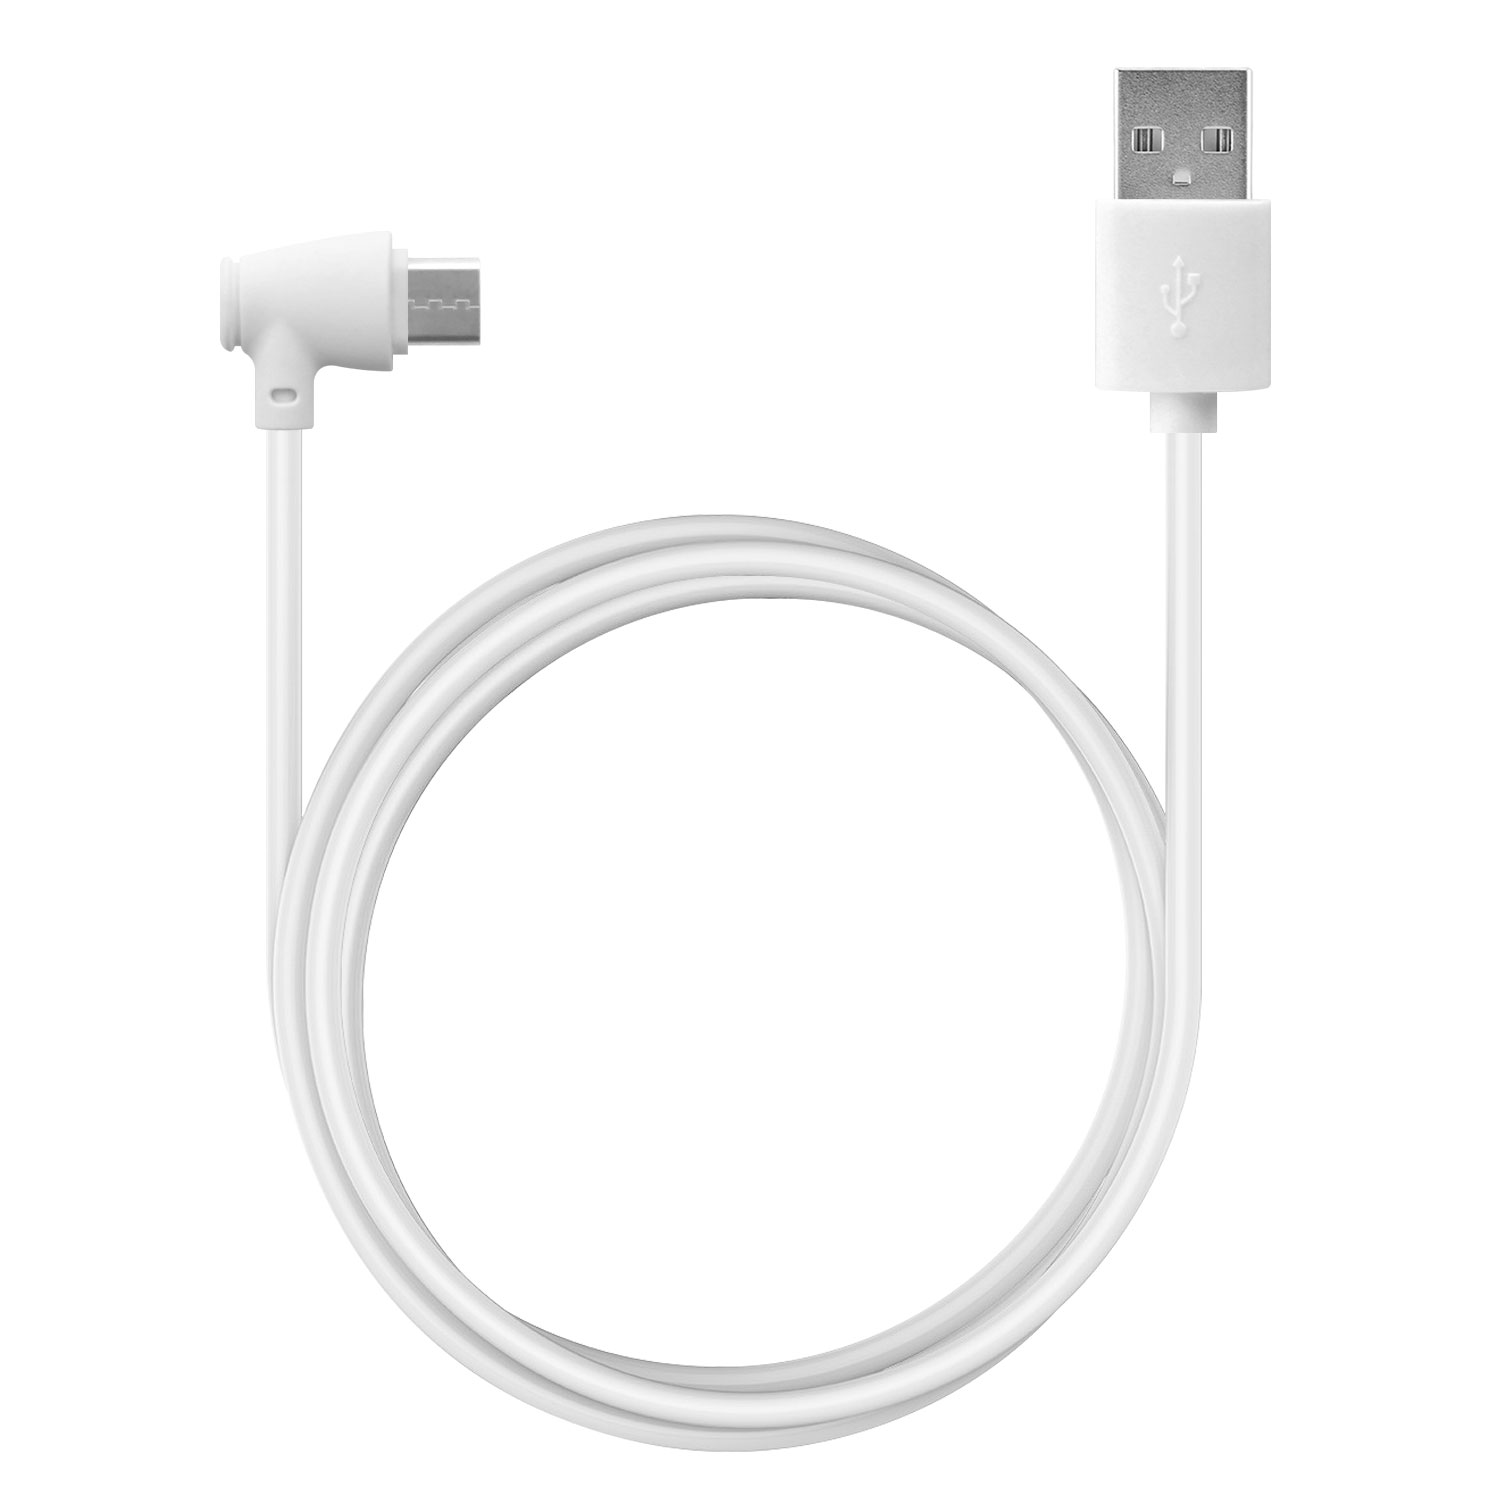 USB Type-C To USB Type-A Data Charging Cable White 3.3ft Angled